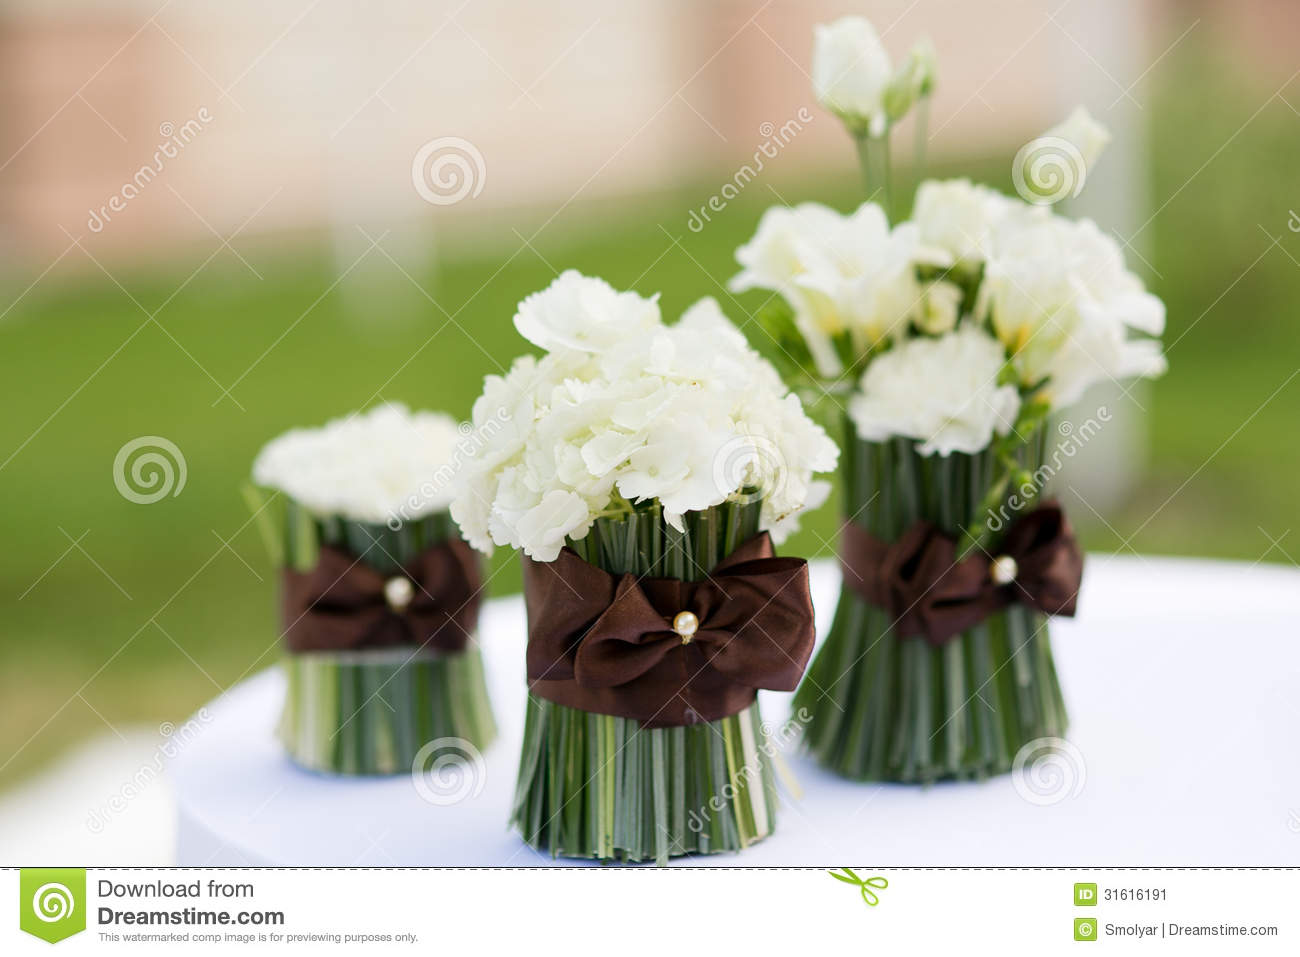 Ordinaire Download Wedding Ceremony Flowers Decor Stock Image   Image Of Stylish,  White: 31616191